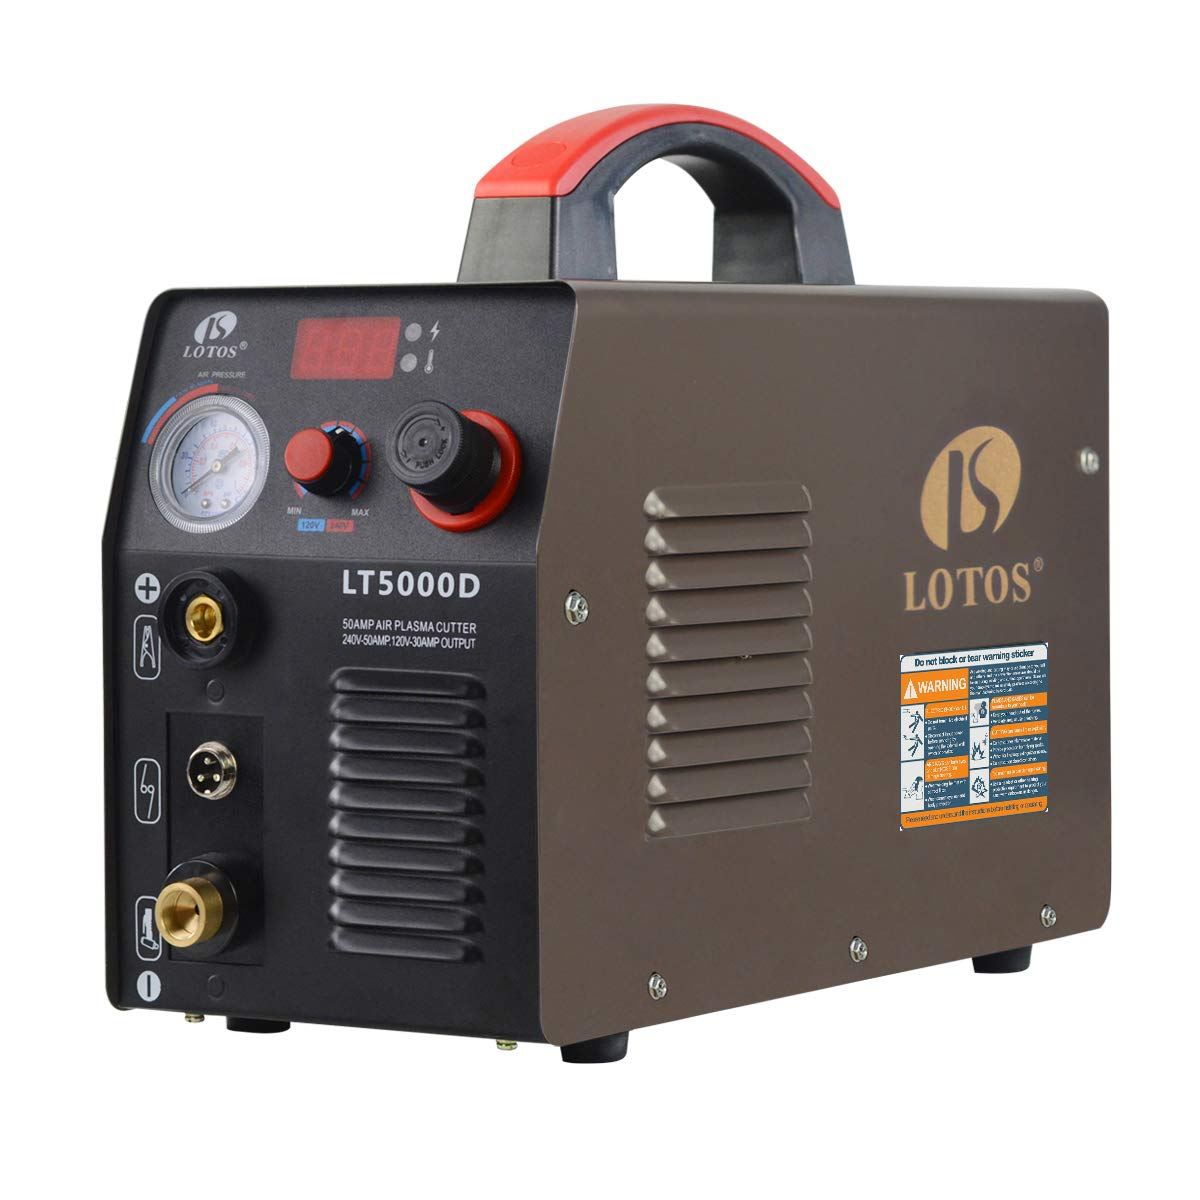 Top 10 Best Chinese Plasma Cutter Reviews in 2020 1